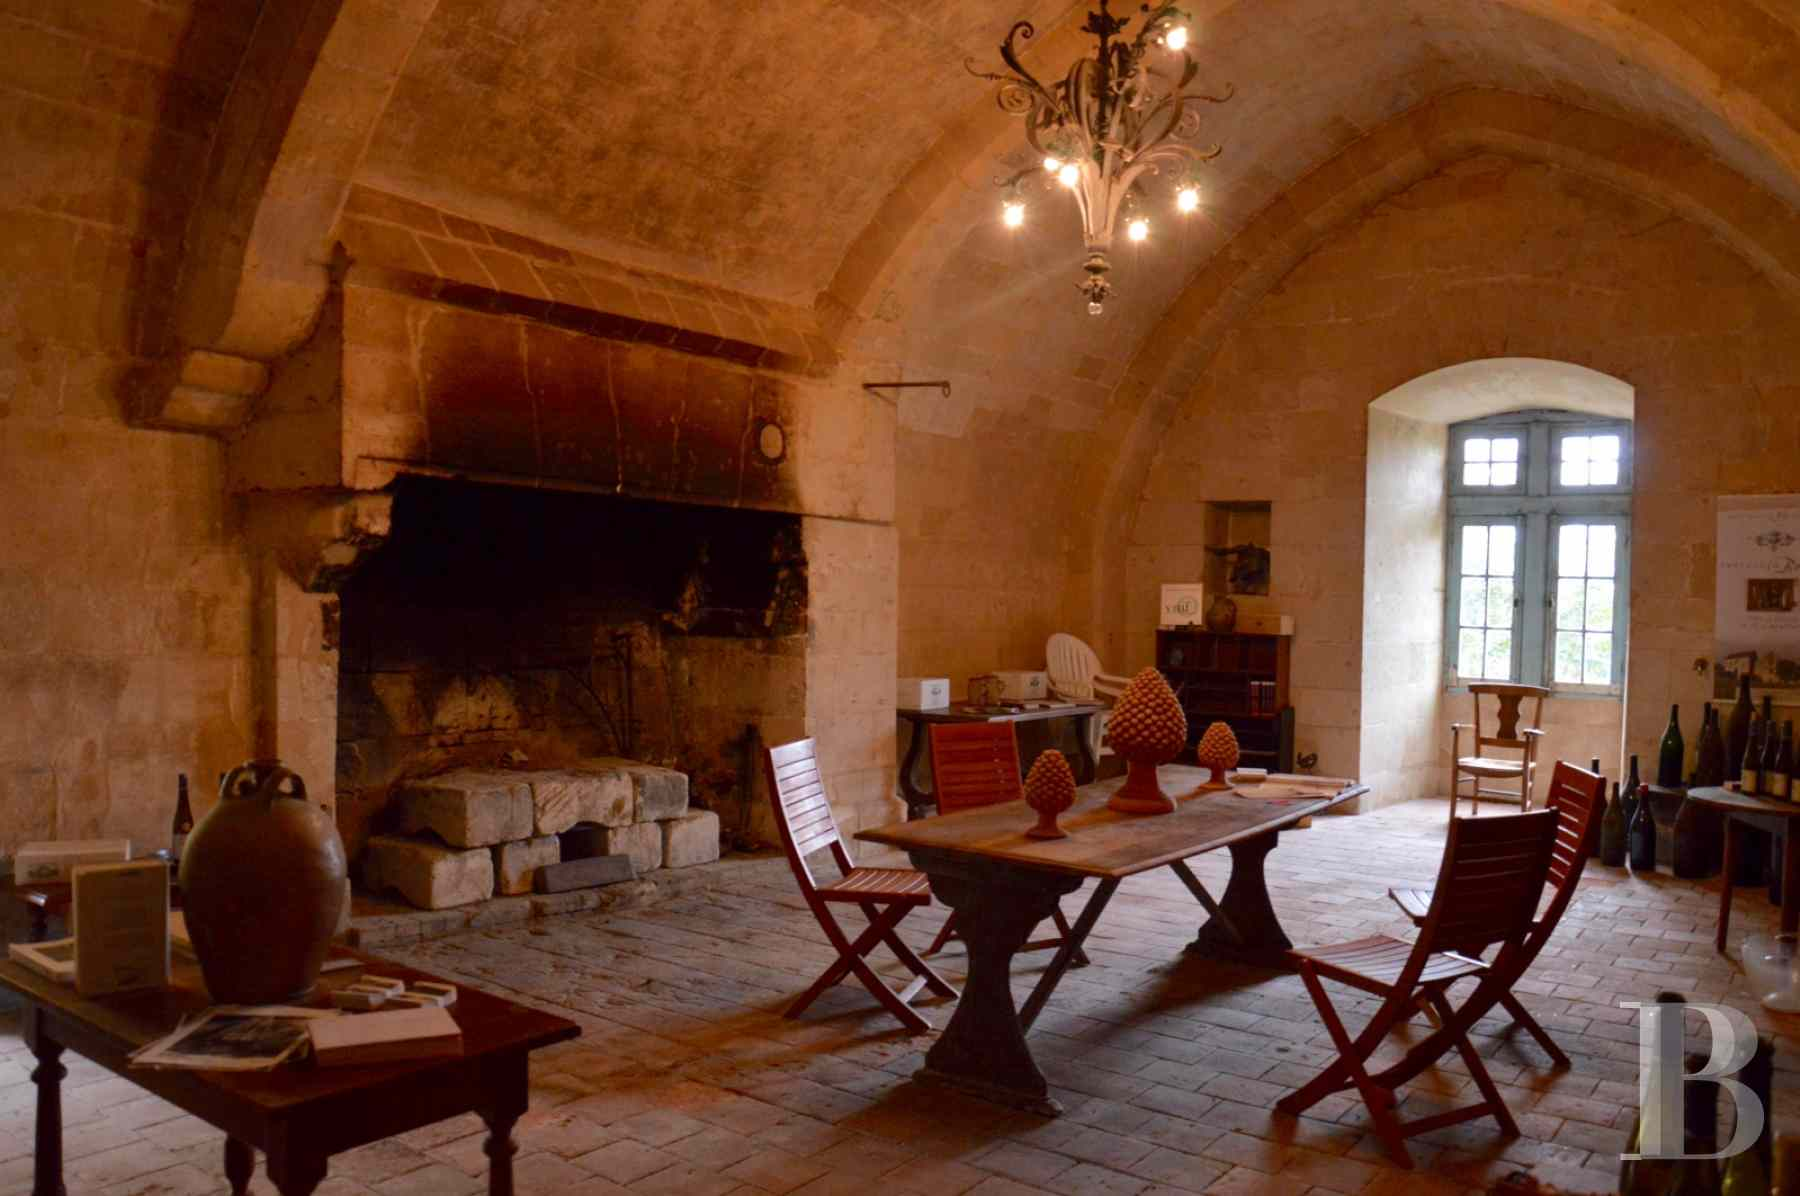 chateaux for sale France poitou charentes 12th century - 12 zoom